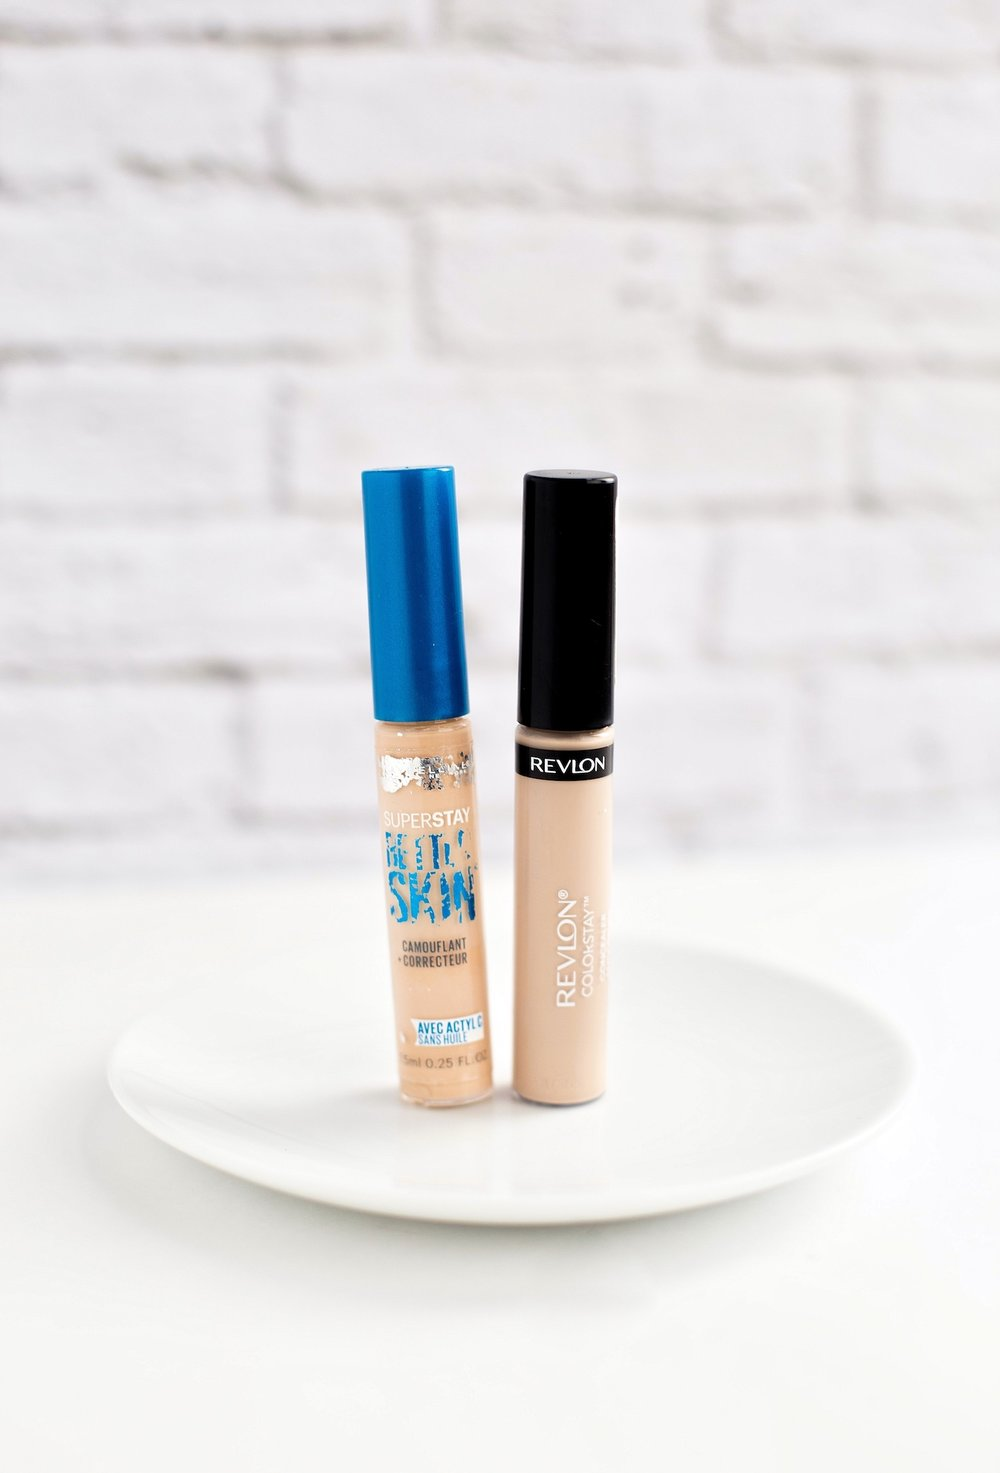 New Beauty Products I'm Loving - Concealers | TrufflesandTrends.com